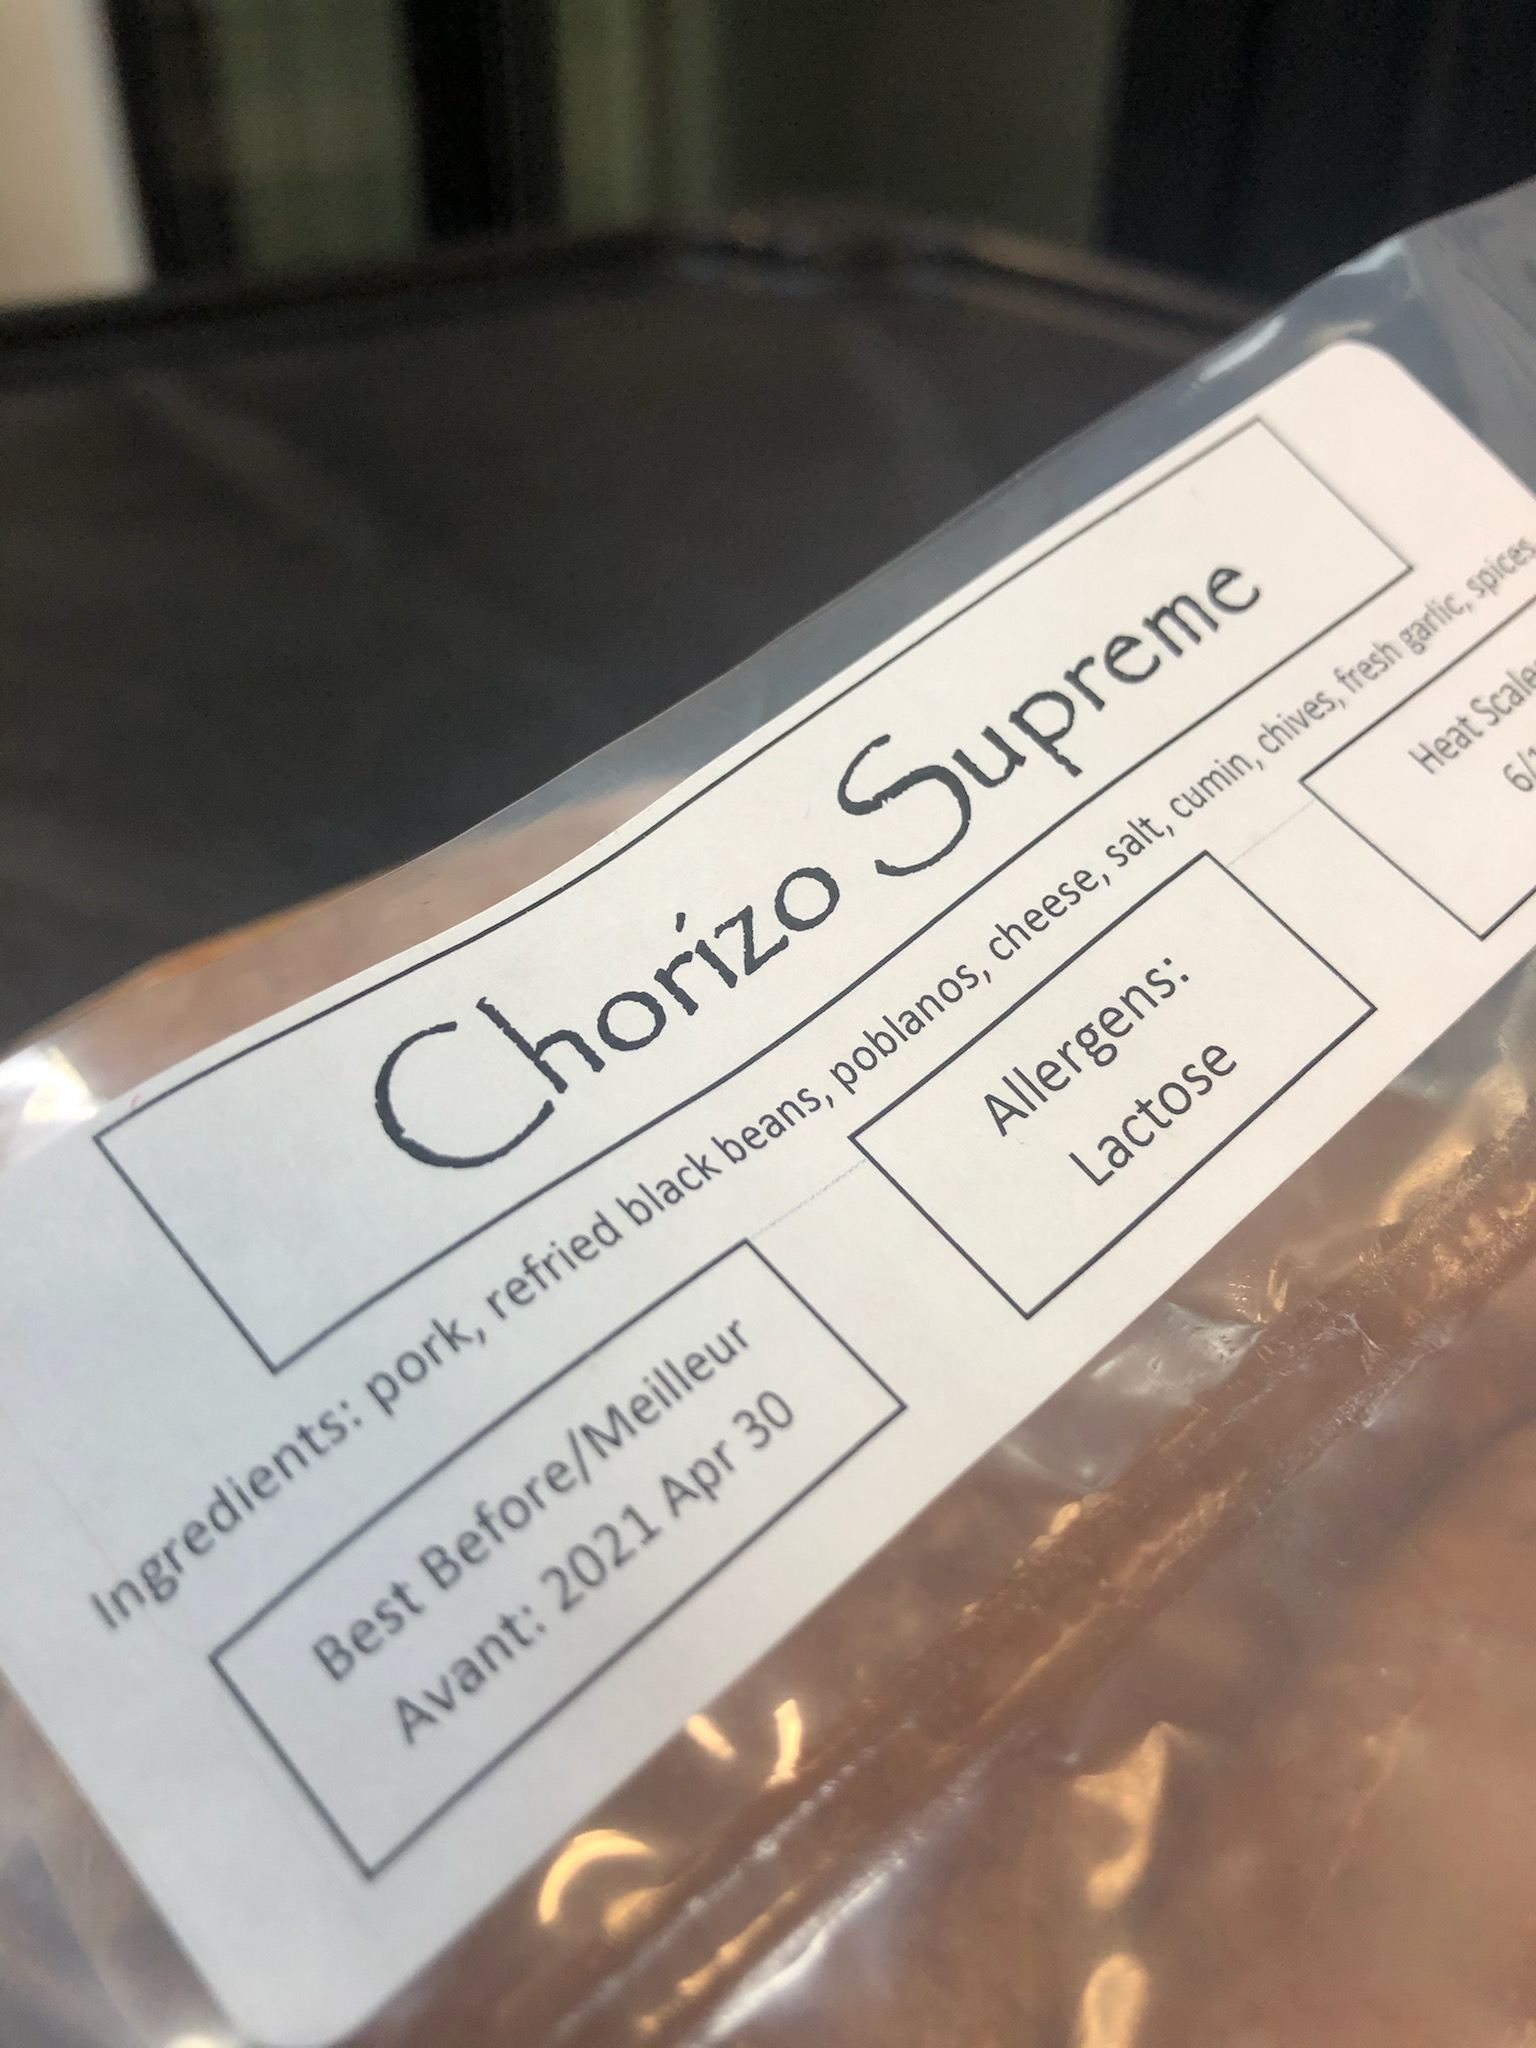 Chorizo Supreme sausages from Robbie's Gourmet Sausage Company in Windsor, Ontario.